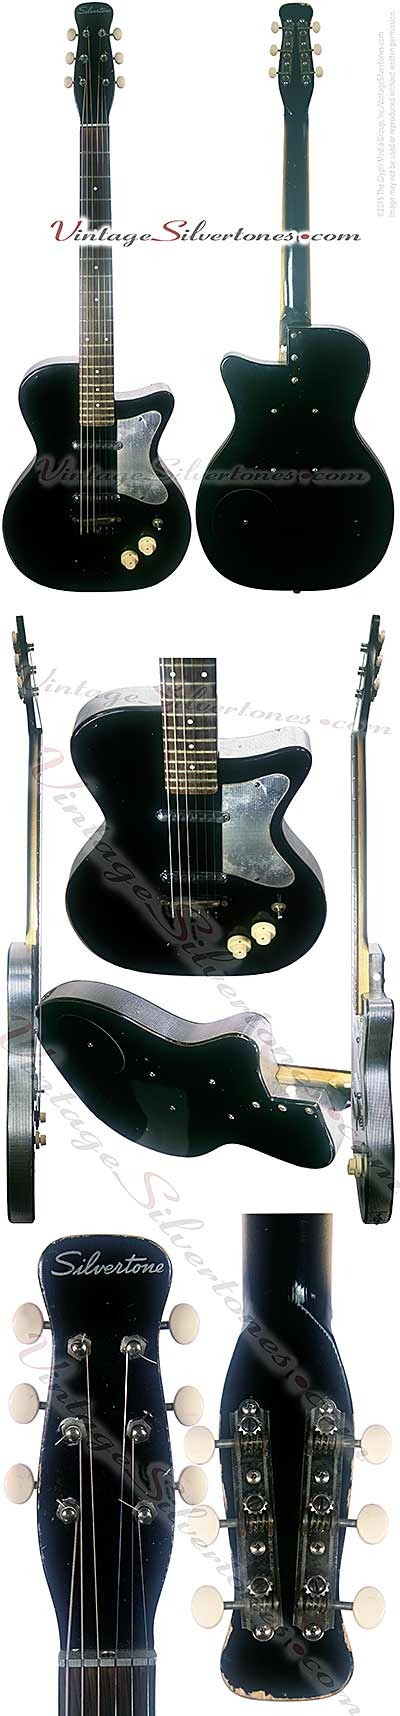 Silvertone 1319 made by Danelectro U2, two pickup, electric guitar, semi-hollow body, black body with silver vinyl binding, masonite body, lipstick pickup, made in 1955